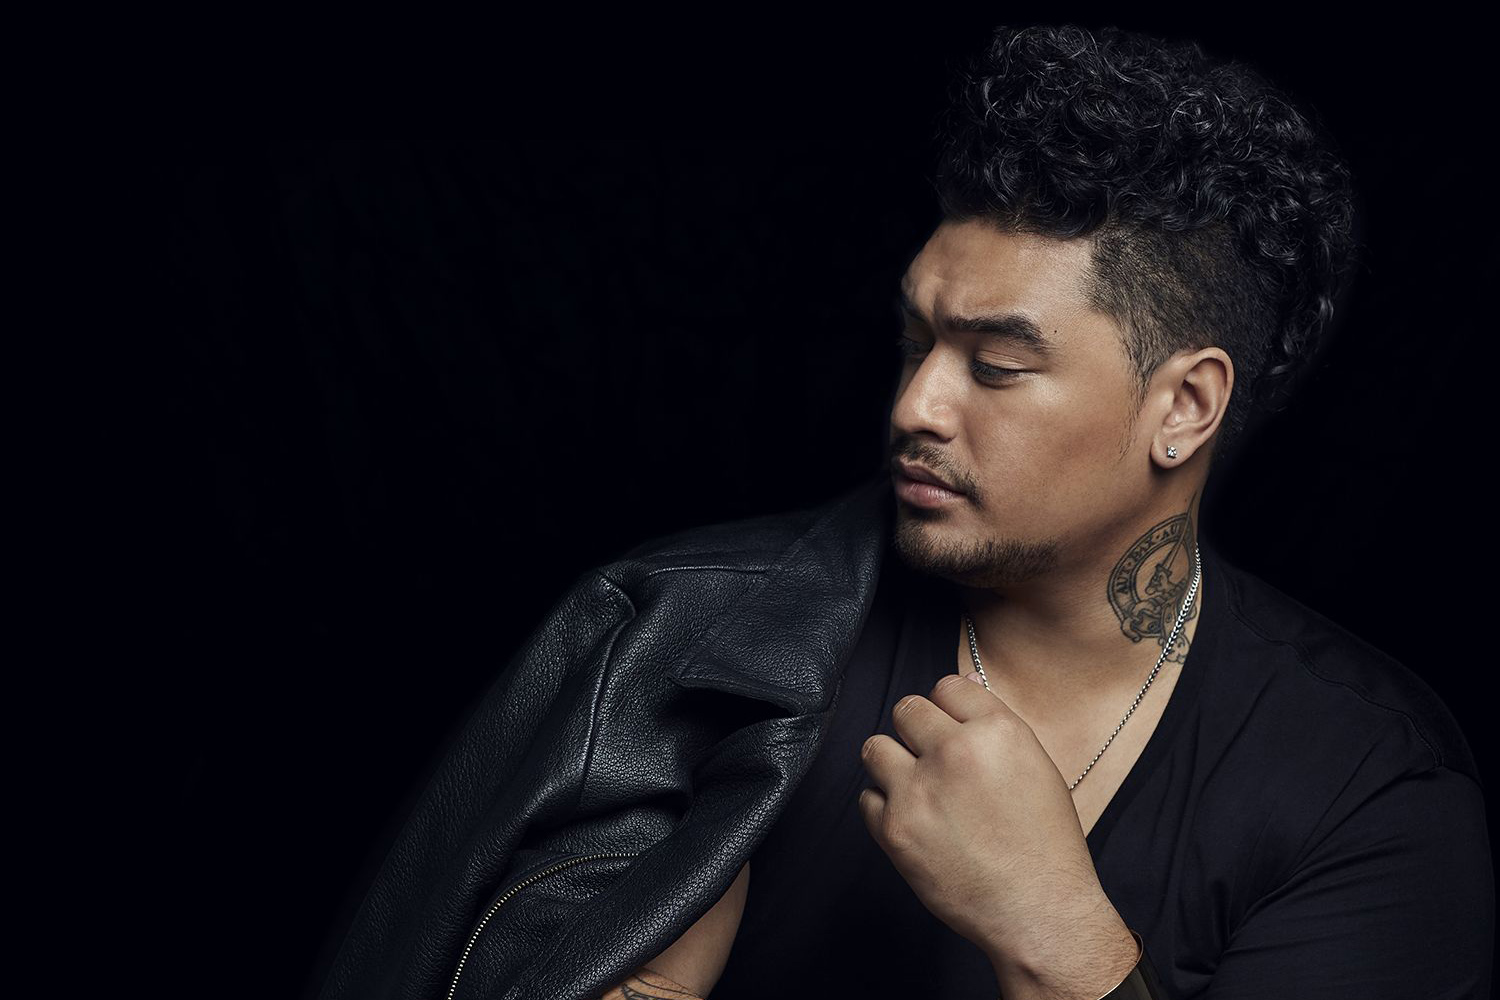 Kings makes history with the longest running #1 NZ single of all time